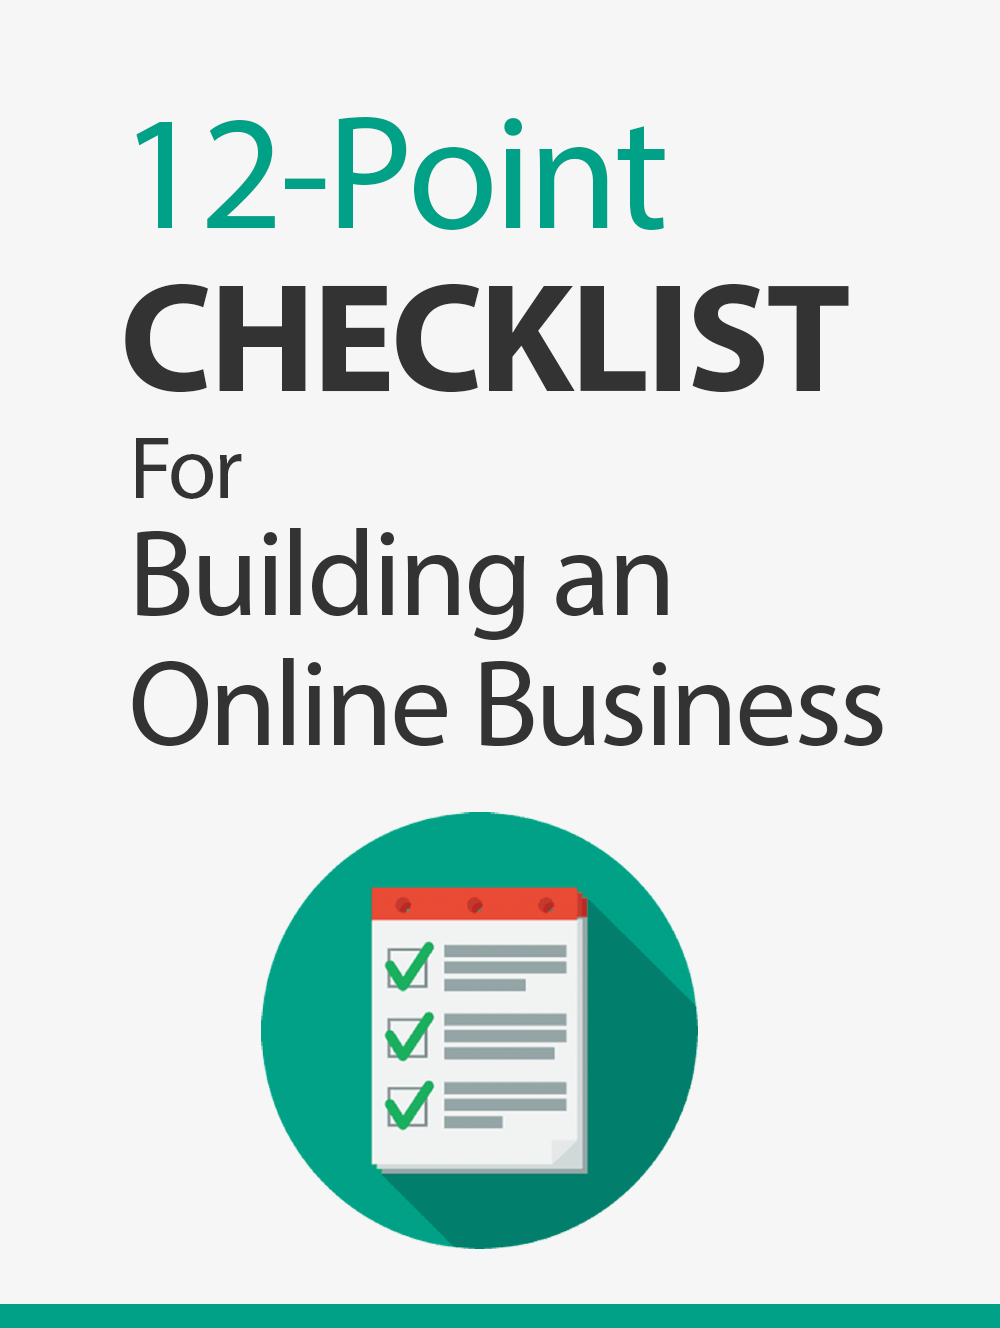 12-Point Checklist For Building An Online Business Ebook's Ebook Image